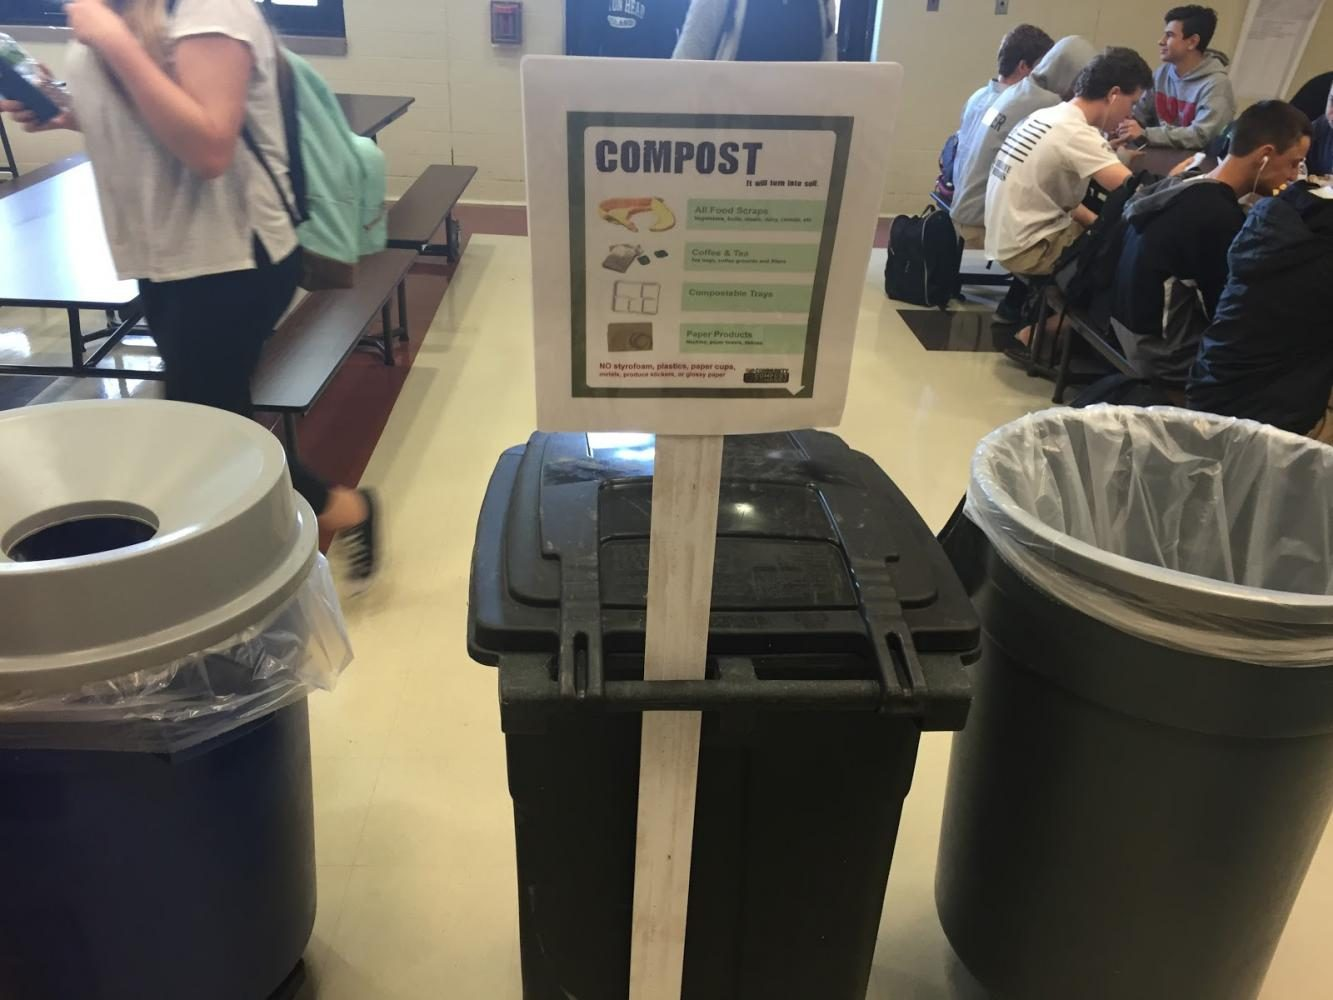 In+the+first+week+of+May%2C+the+compost+bin+was+finally+put+in+the+cafeteria+for+students+to+use+during+lunch.+Environmental+students+sat+near+the+compost+bin+to+encourage+and+remind+students+they+now+have+the+option+to+compost.